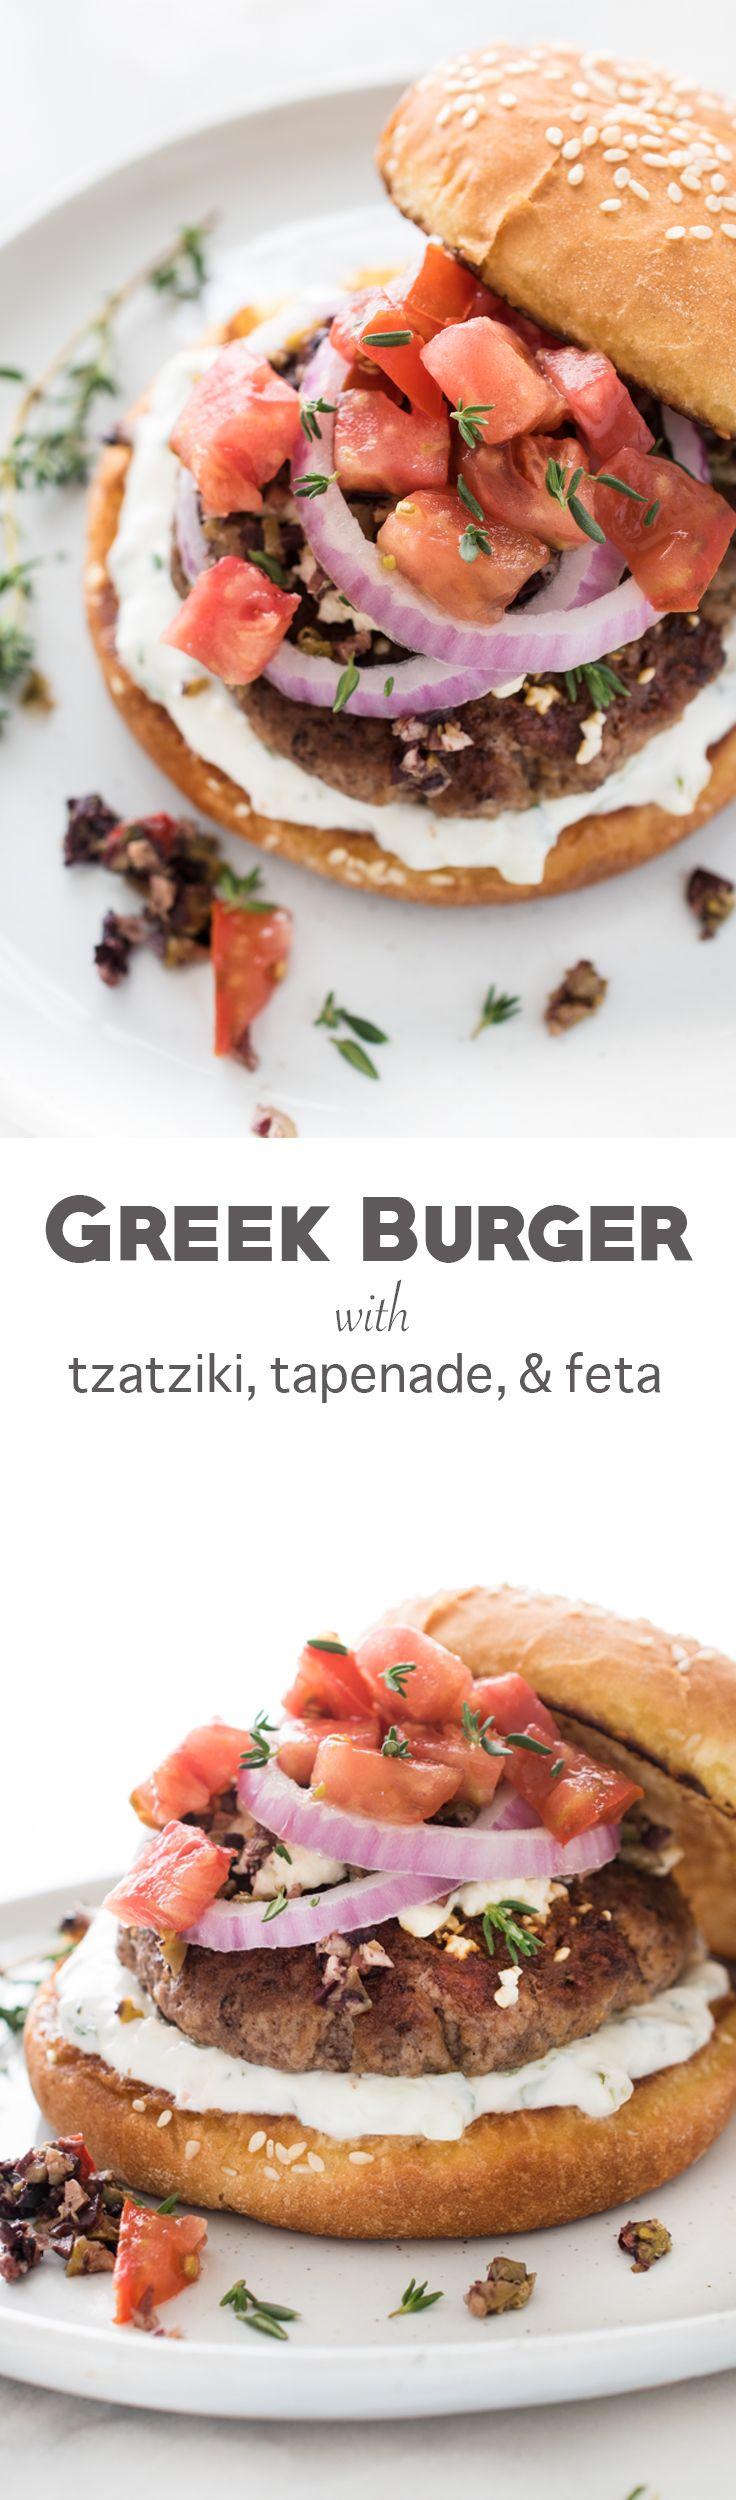 Juicy and succulent Greek Burger with Tzatziki, Tapenade, and Feta - perfect for the grill or in the skillet!